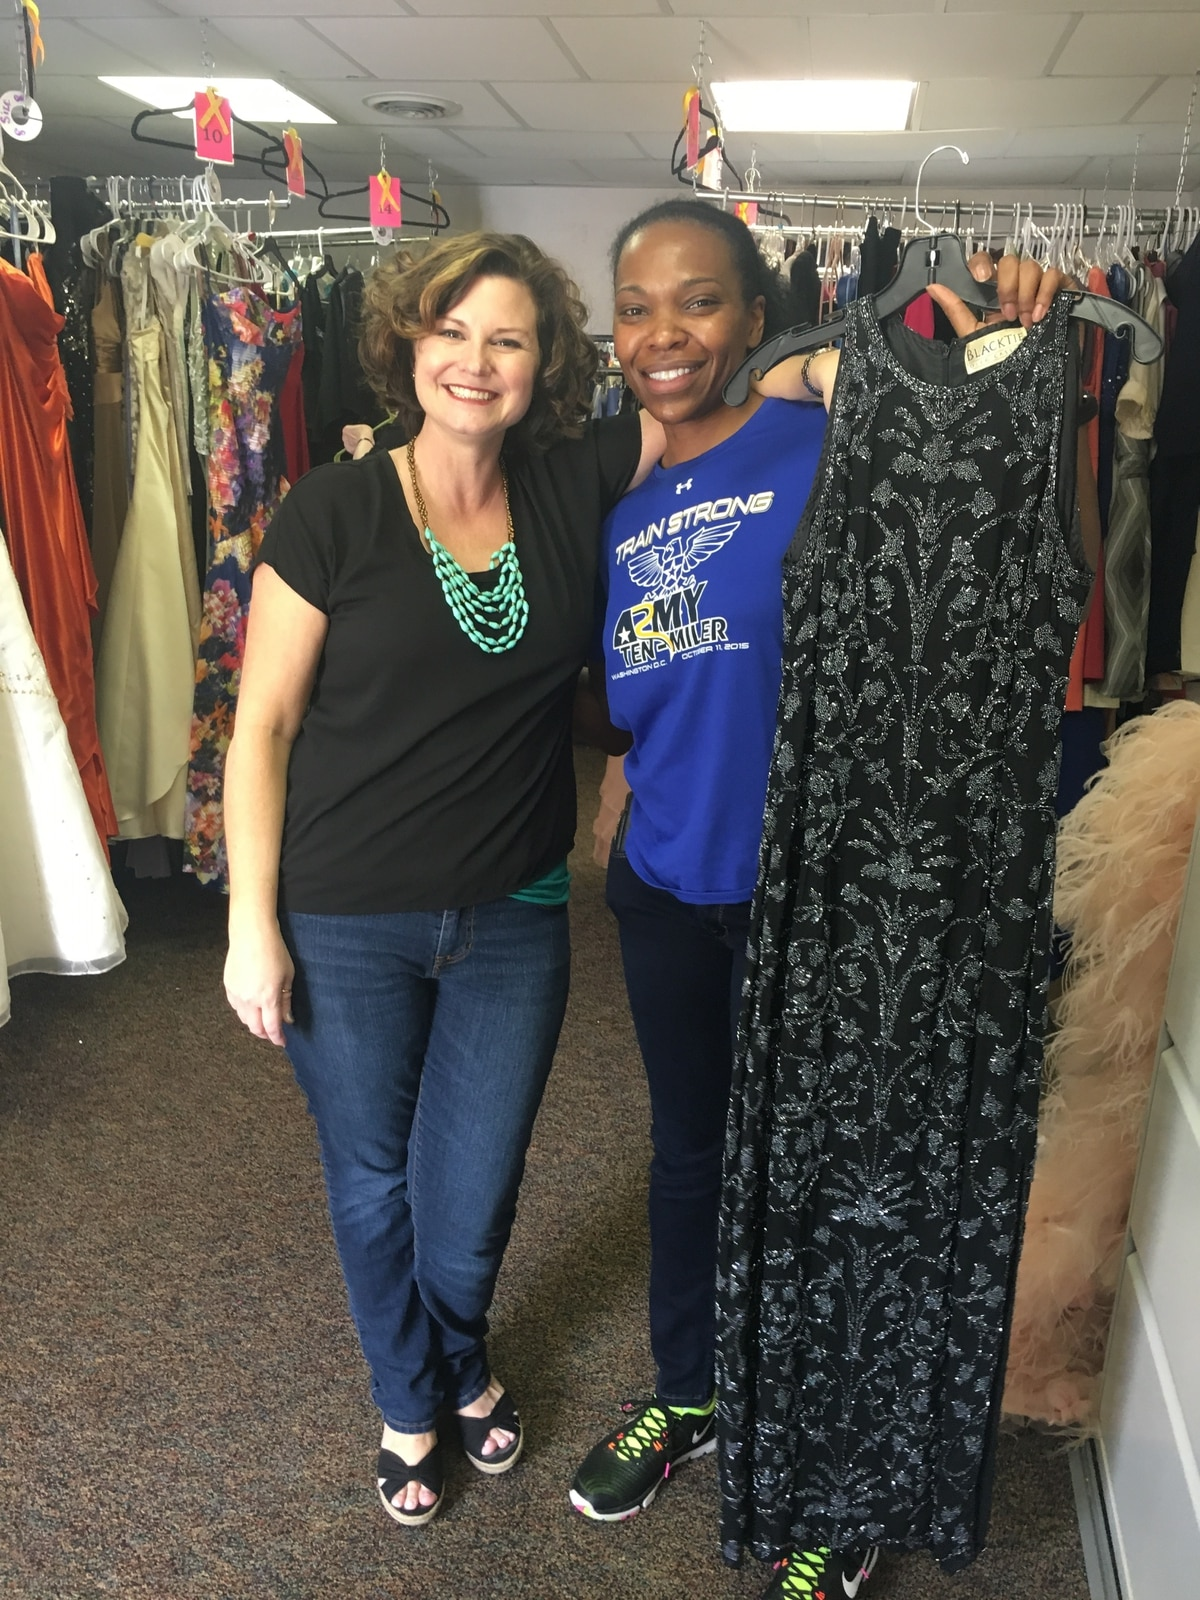 New charity offers ball gowns to military families — for free